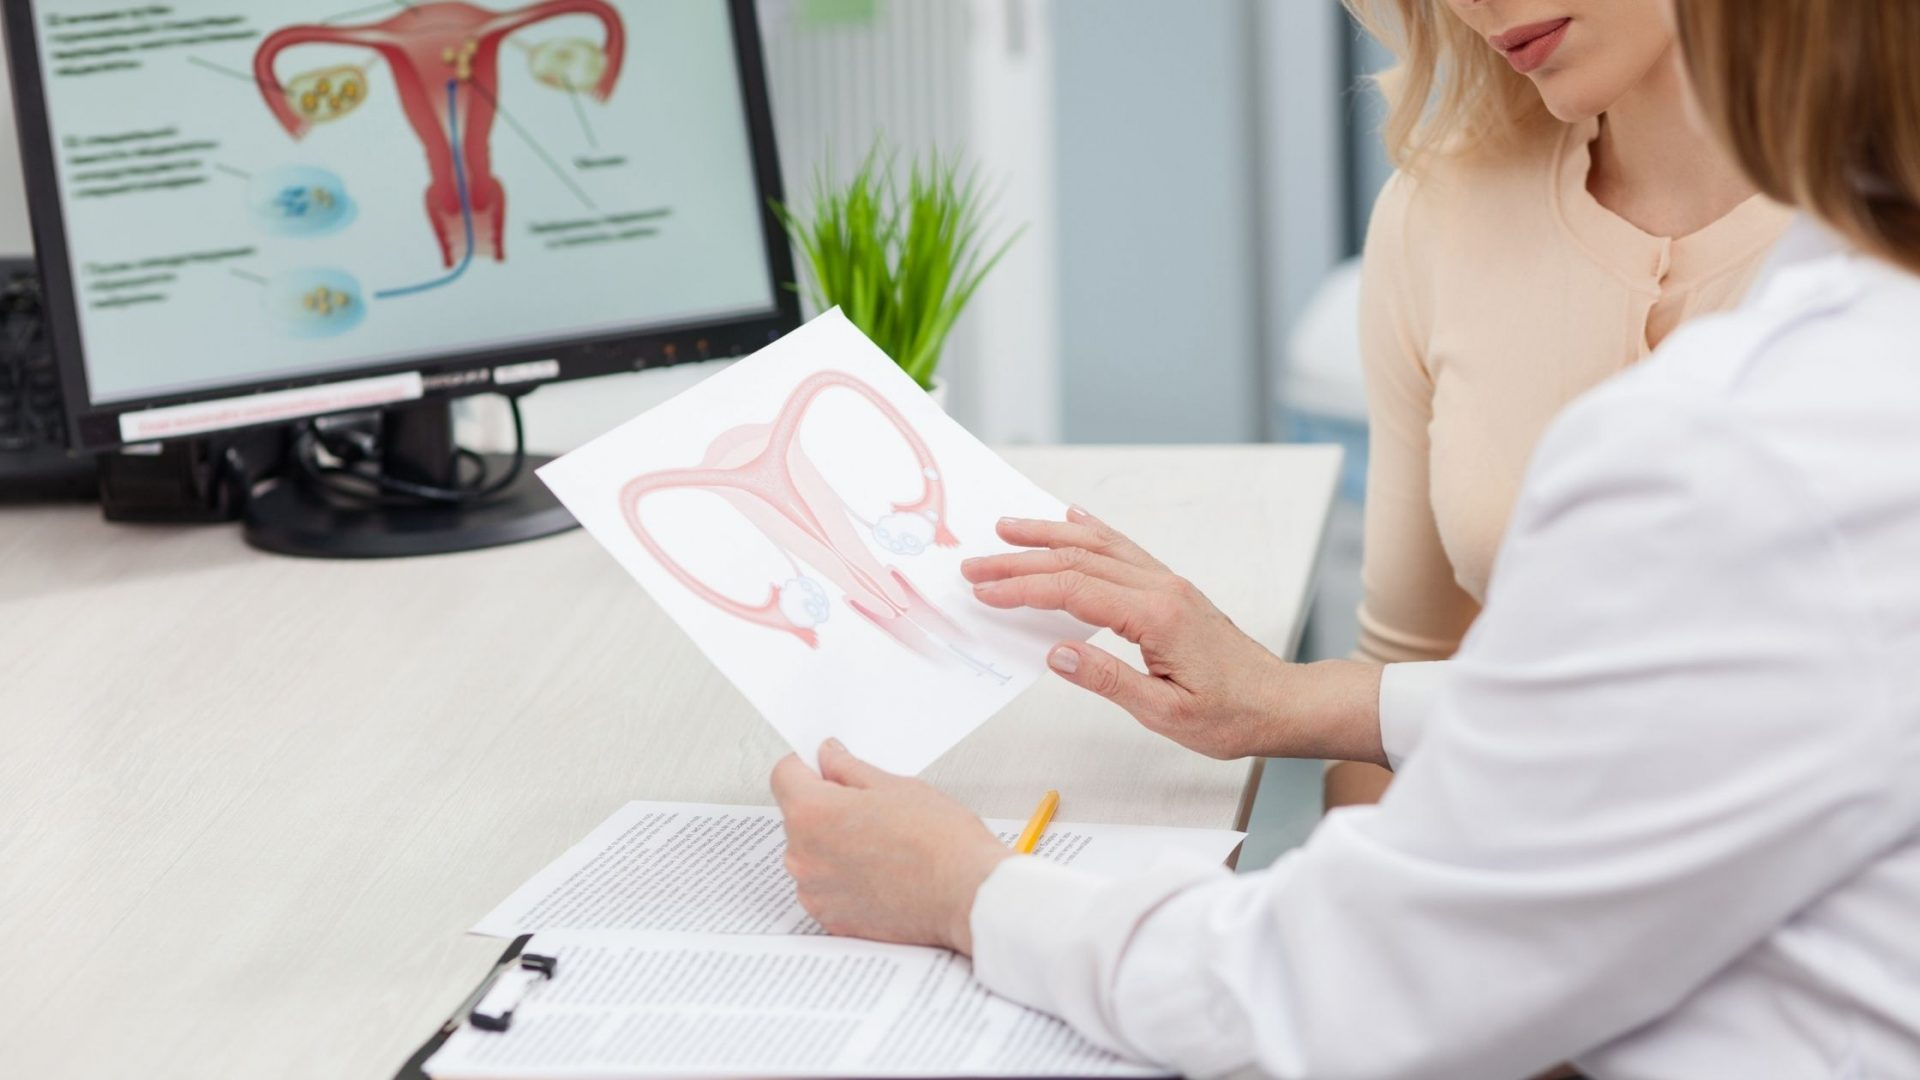 7 most common taboo questions for the gynecologist